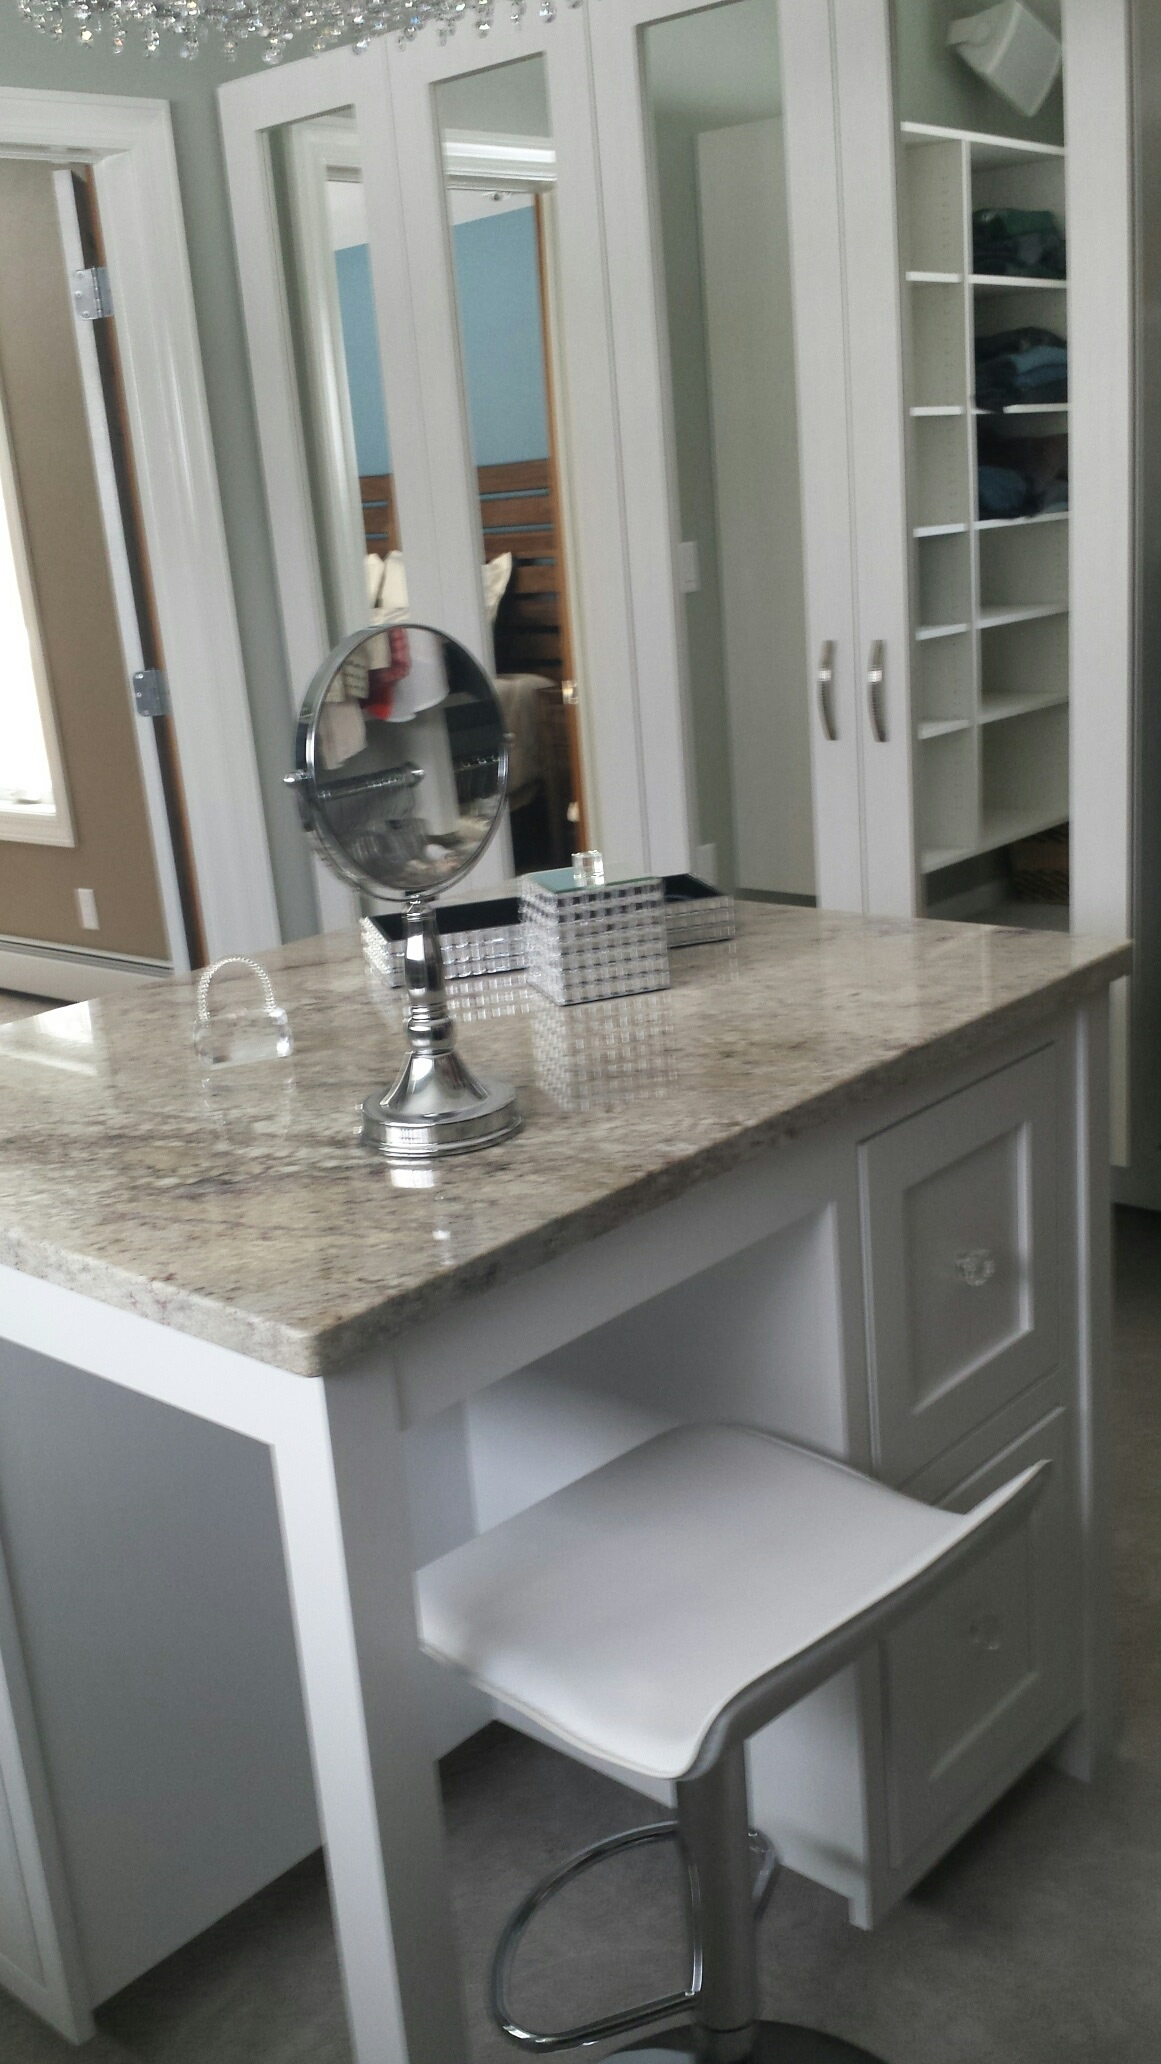 CUSTOM CABINETRY AT AFFORDABLE PRICES